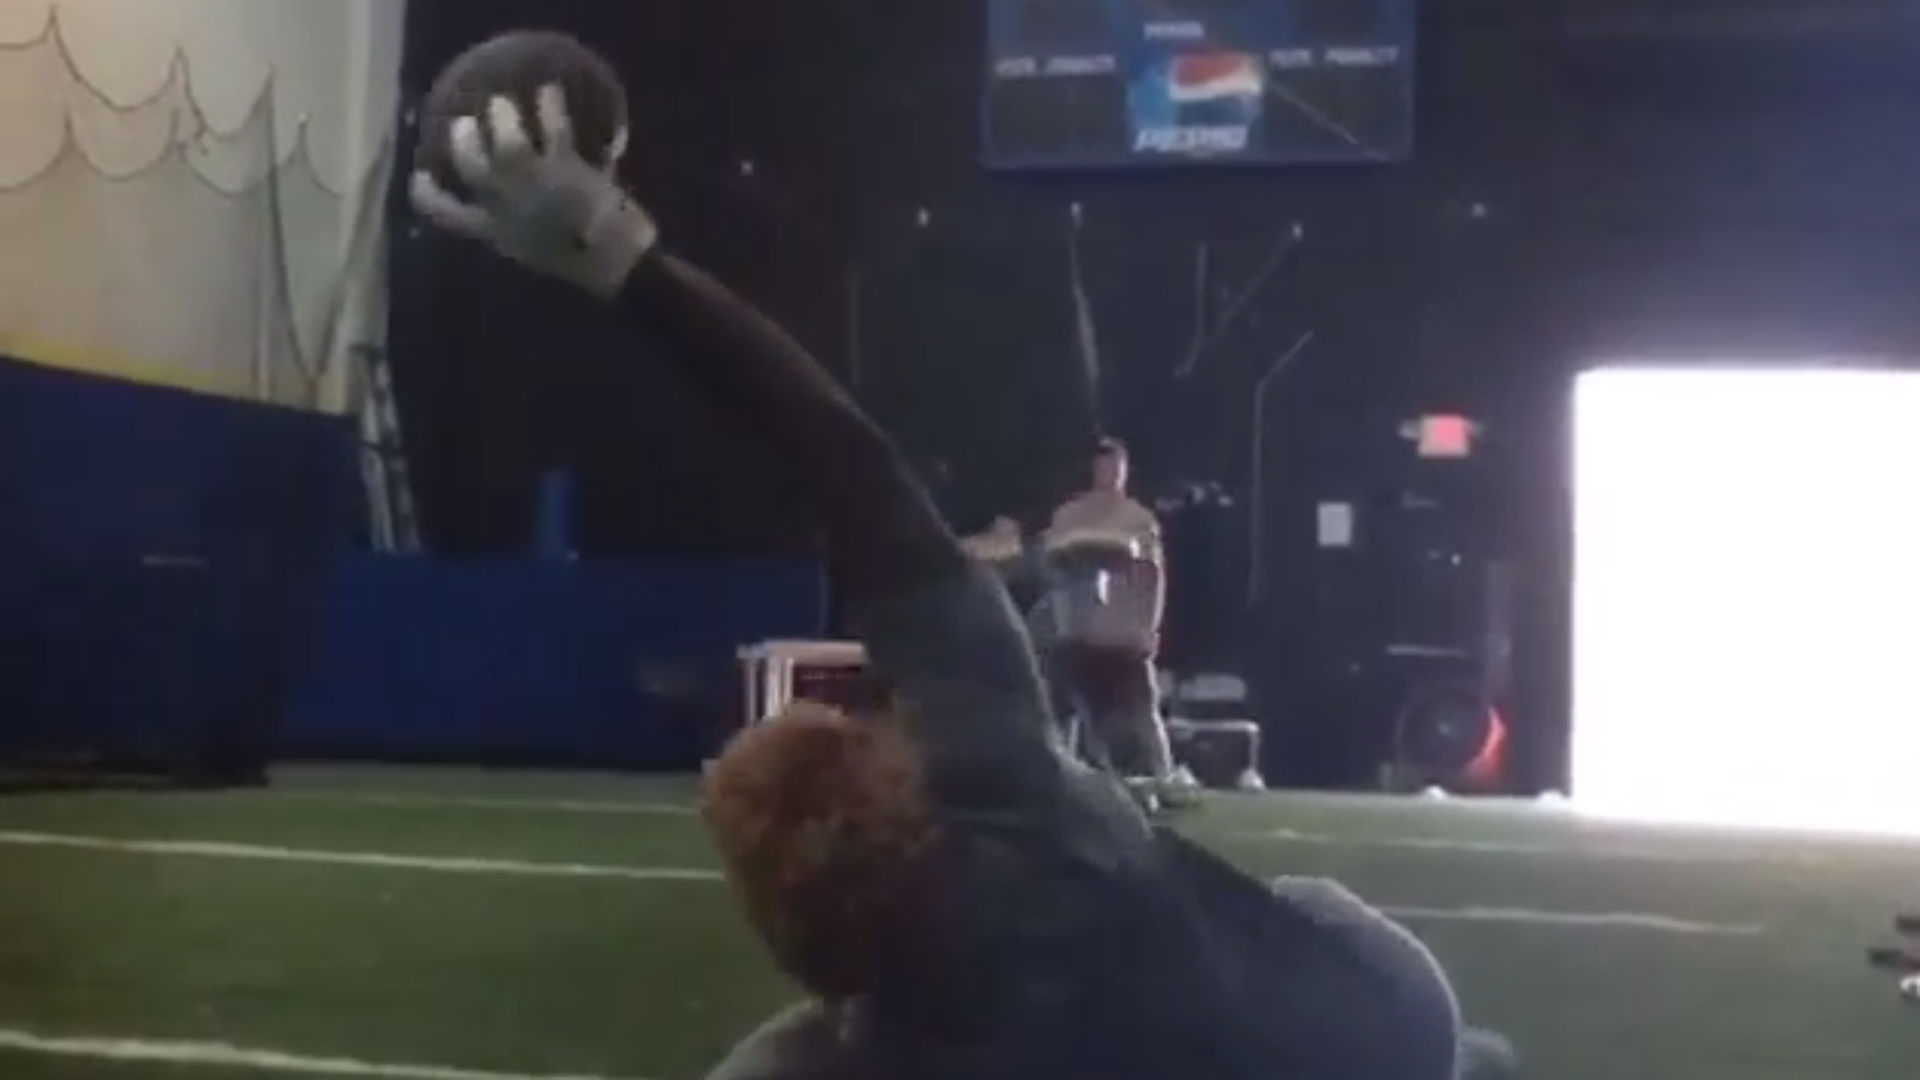 Odell Beckham Jr., Jarvis Landry make ridiculous catches on their backs